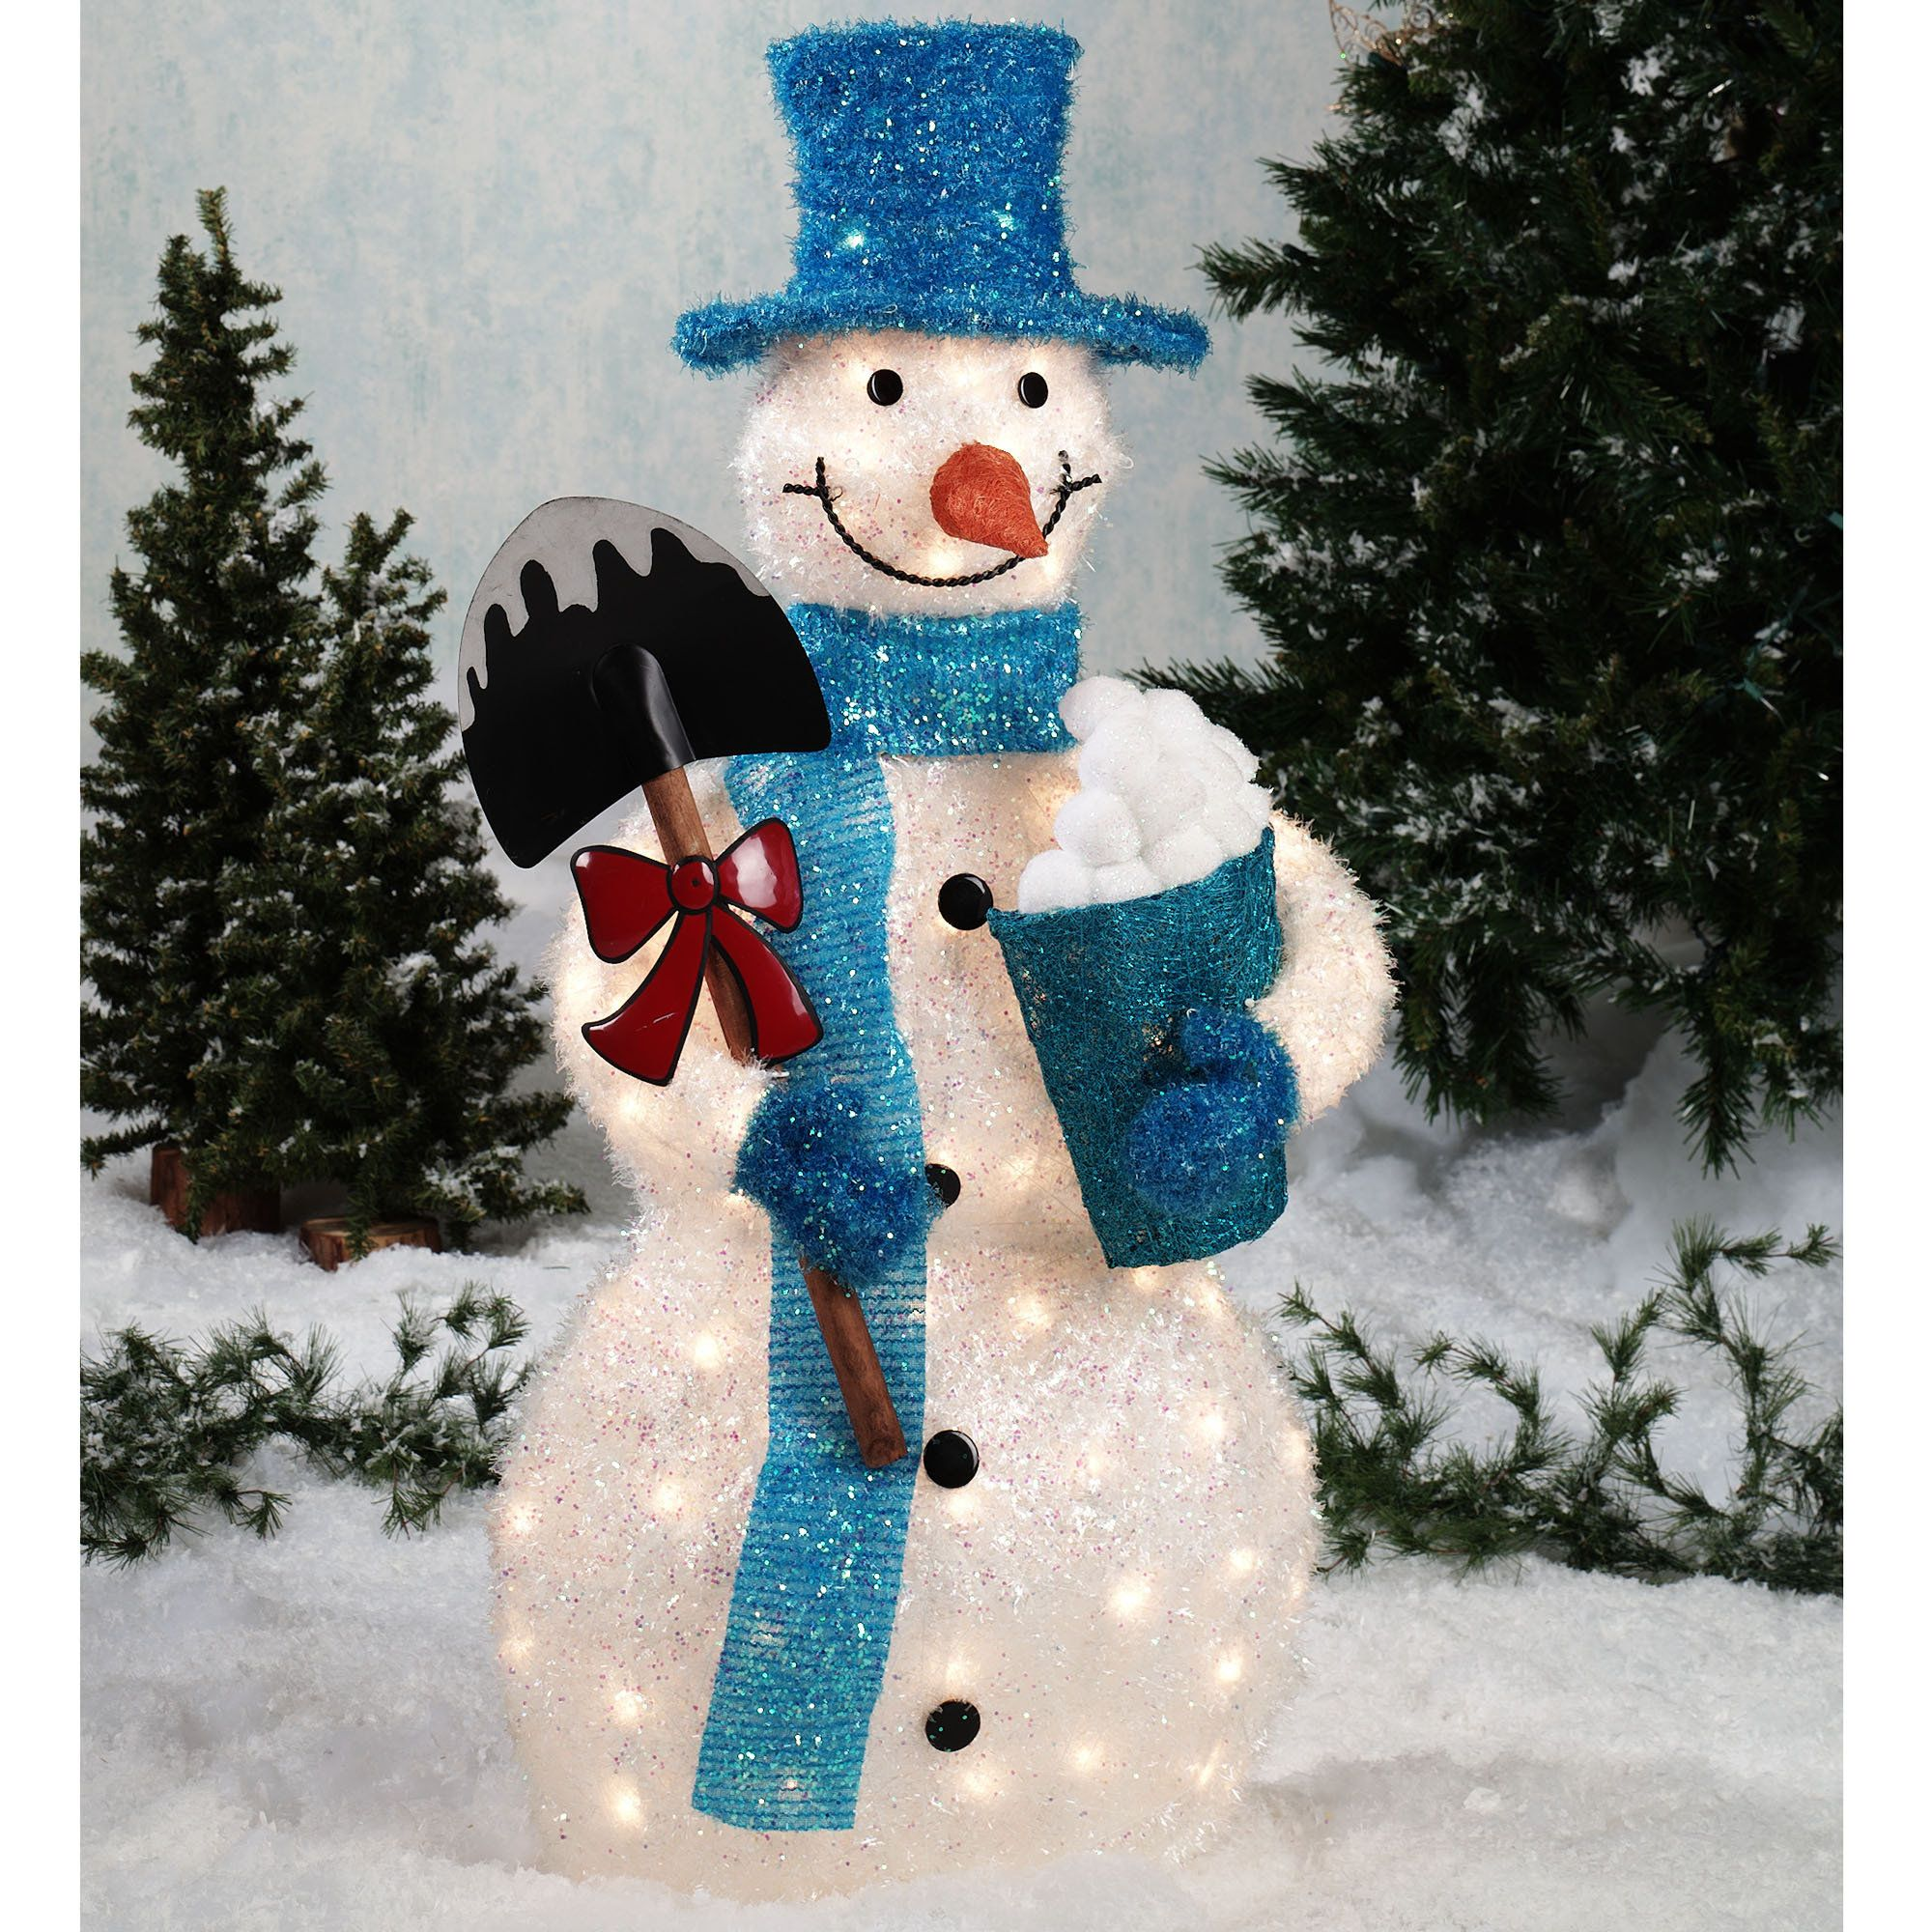 Tinsel snowman outdoor sculpture touch of class 13999 tinsel tinsel snowman outdoor sculpture touch of class 13999 tinsel snowman outdoor sculpture 70 lights cheer decorationsdiy christmas aloadofball Image collections